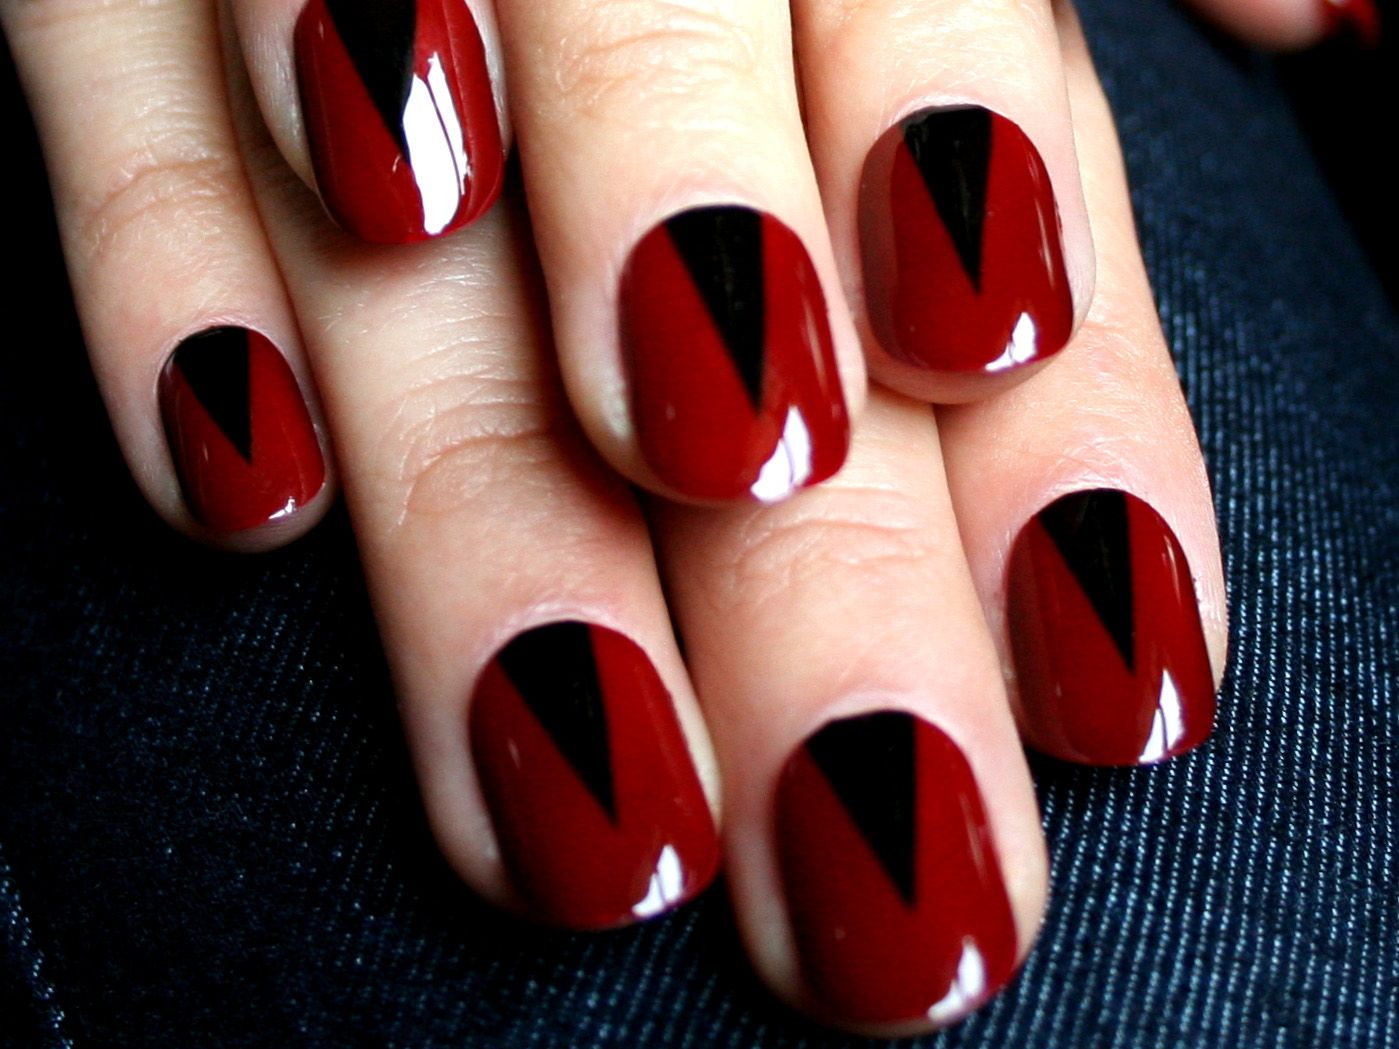 Style fashion trends beauty tips hairstyles celebrity style red nail art prinsesfo Choice Image